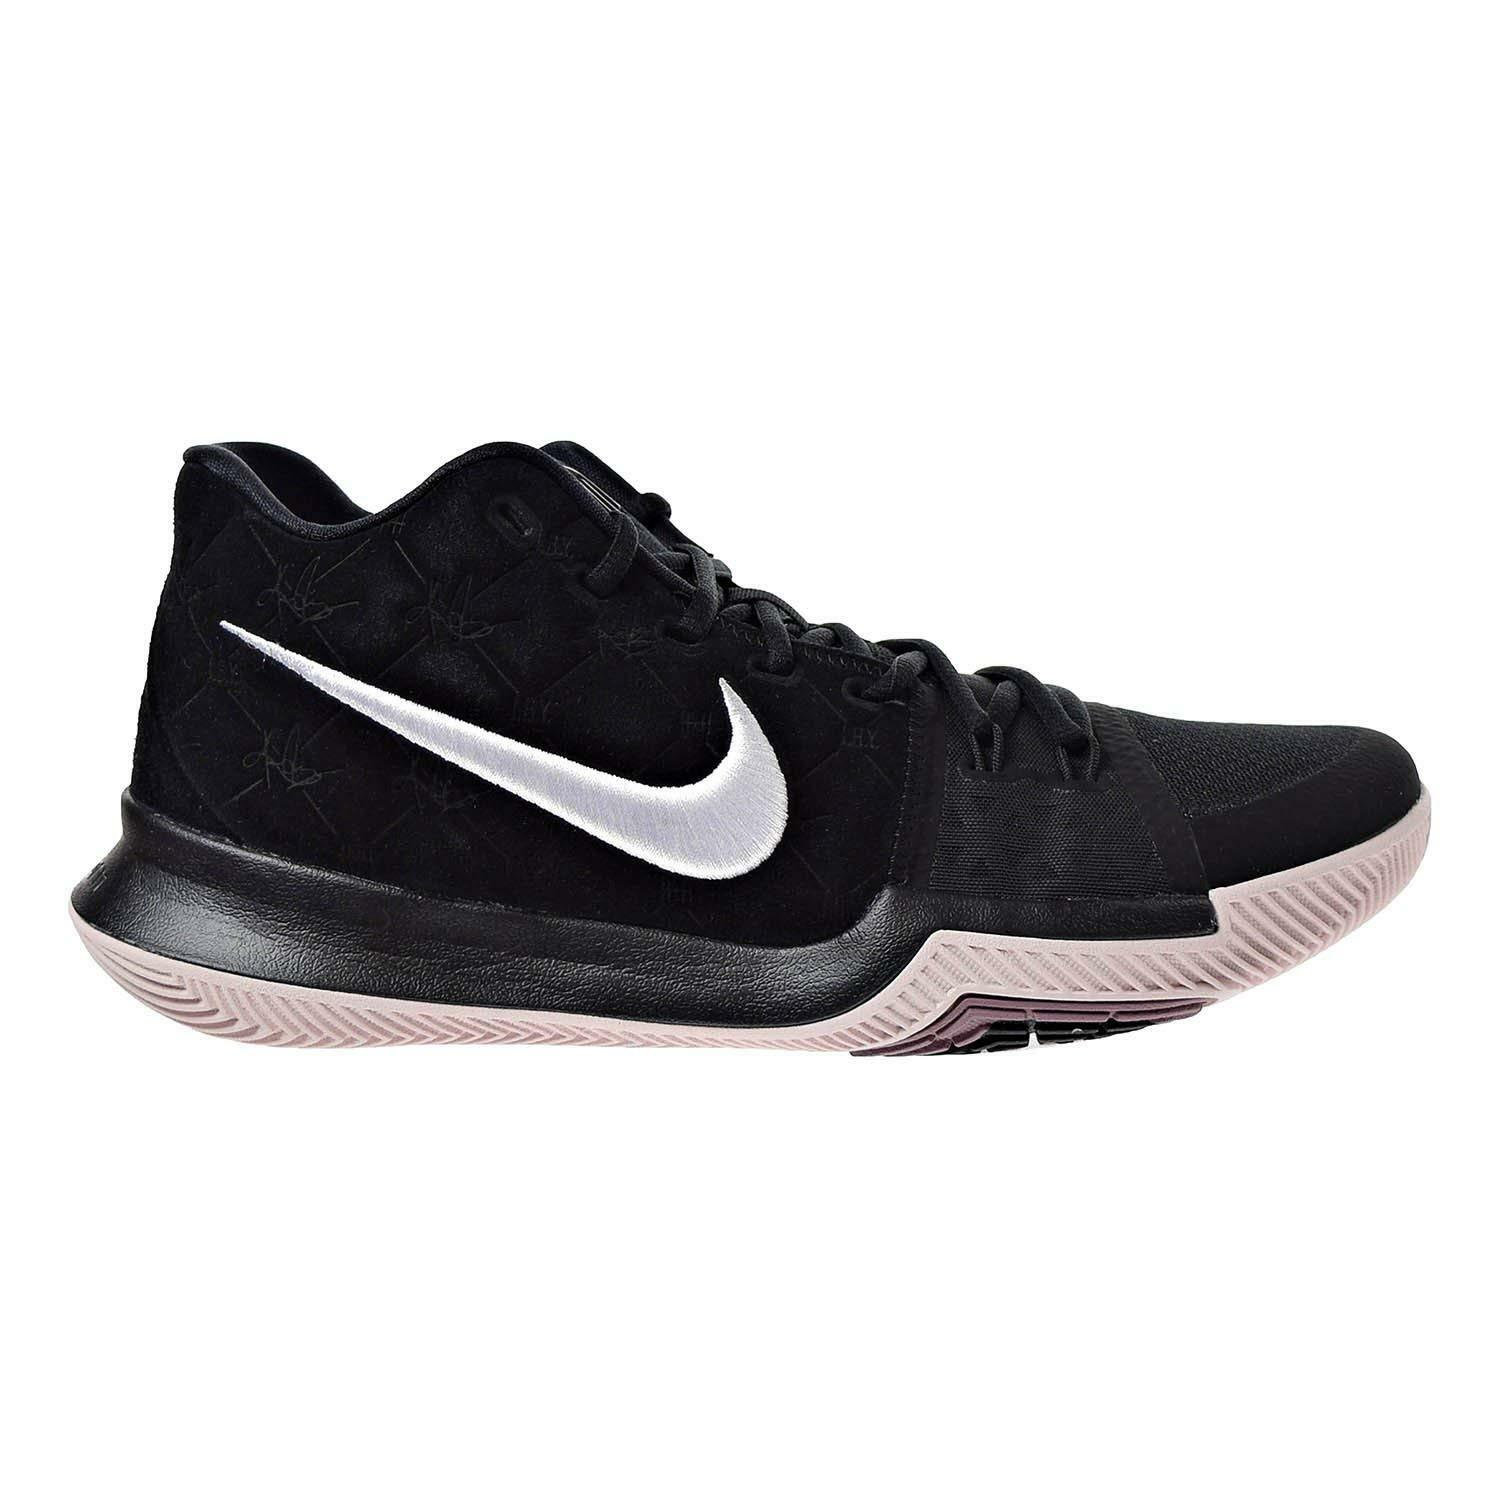 ccfc9b5c261d NIKE Kyrie 3 Mens Basketball shoes - Size 10.5 (852395-010) (852395 ...